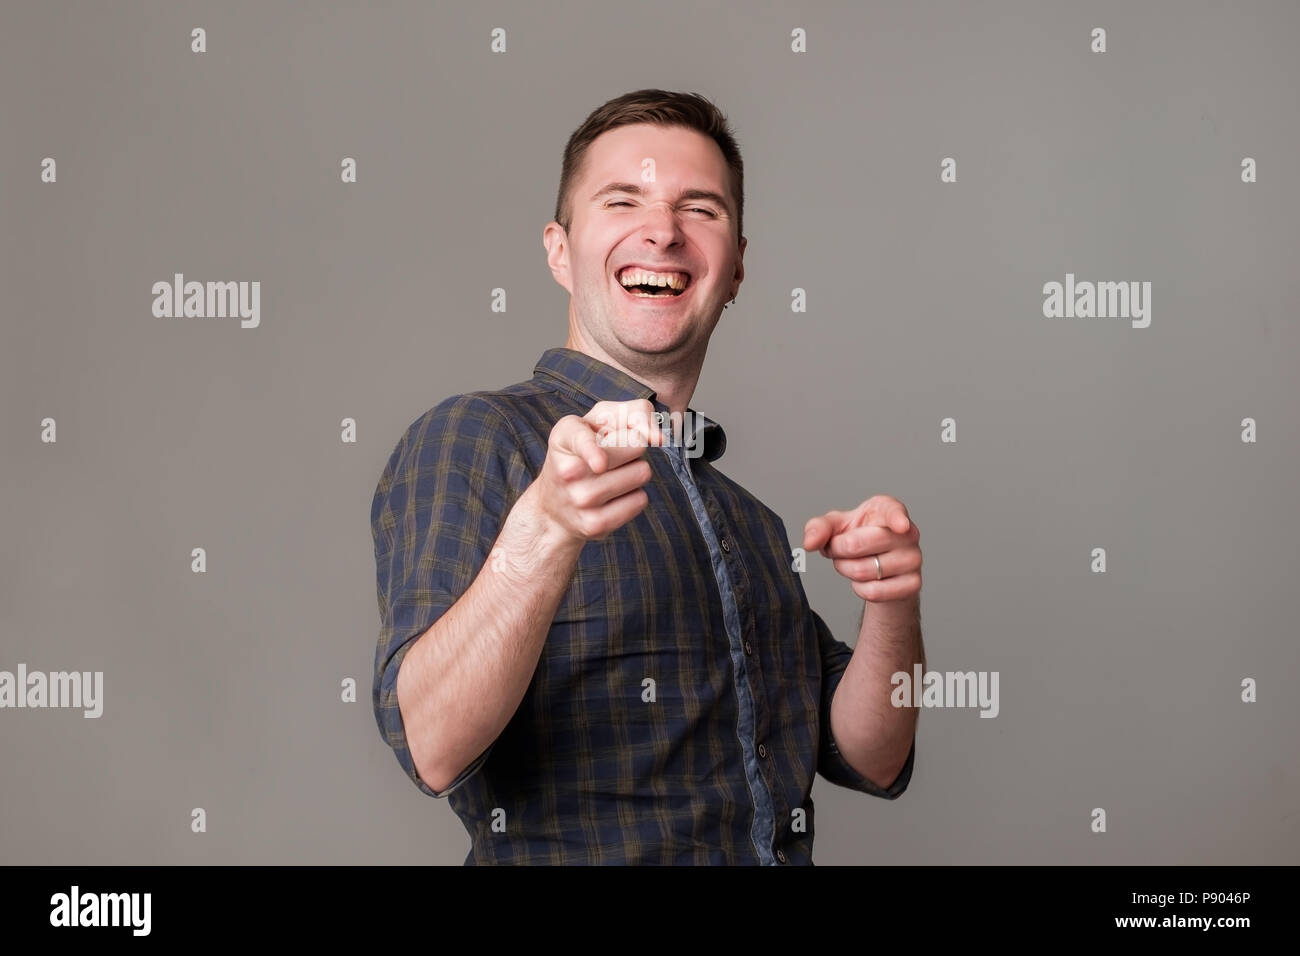 Handsome excited european young man smiling pointing fingers at you. - Stock Image